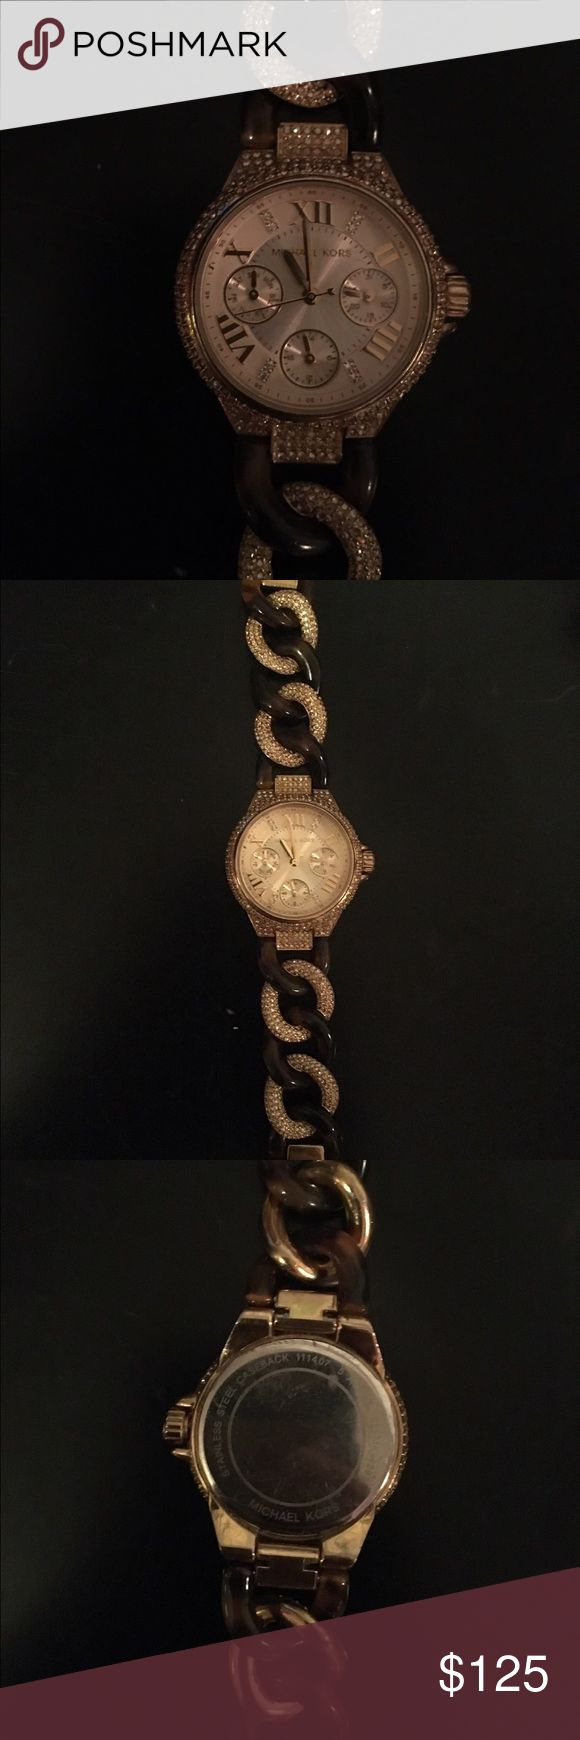 Michael Kors Tortoise Watch Perfect condition! Make me an offer:) Michael Kors Accessories Watches